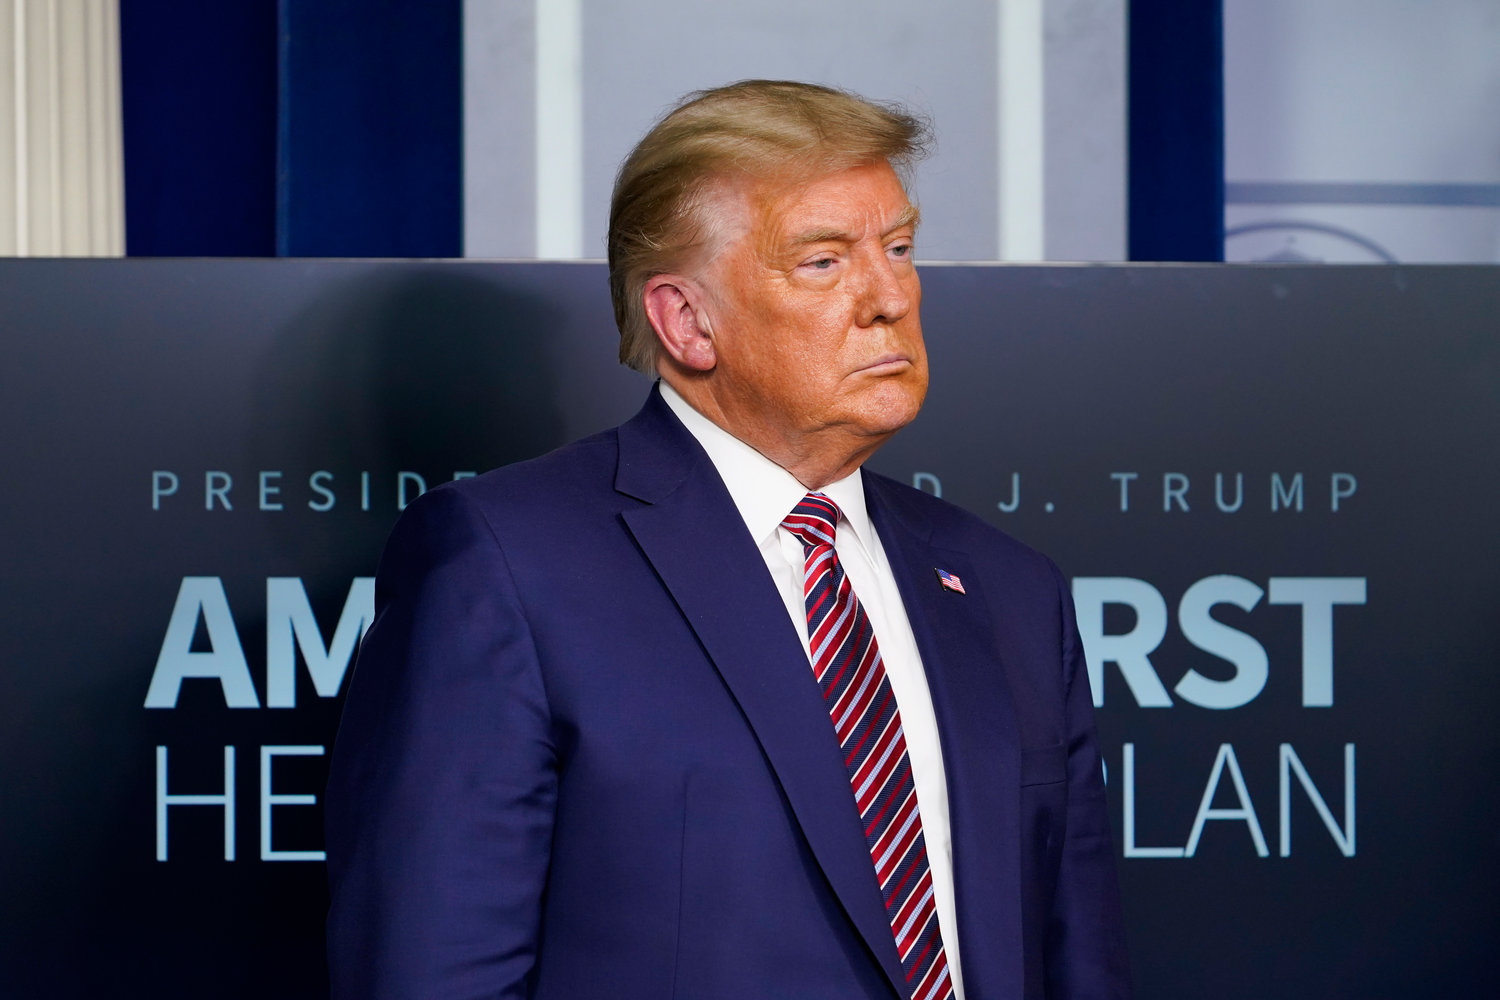 FILE - In this Nov. 20, 2020, file photo President Donald Trump listens during a news conference in the briefing room at the White House in Washington. (AP Photo/Susan Walsh, File)